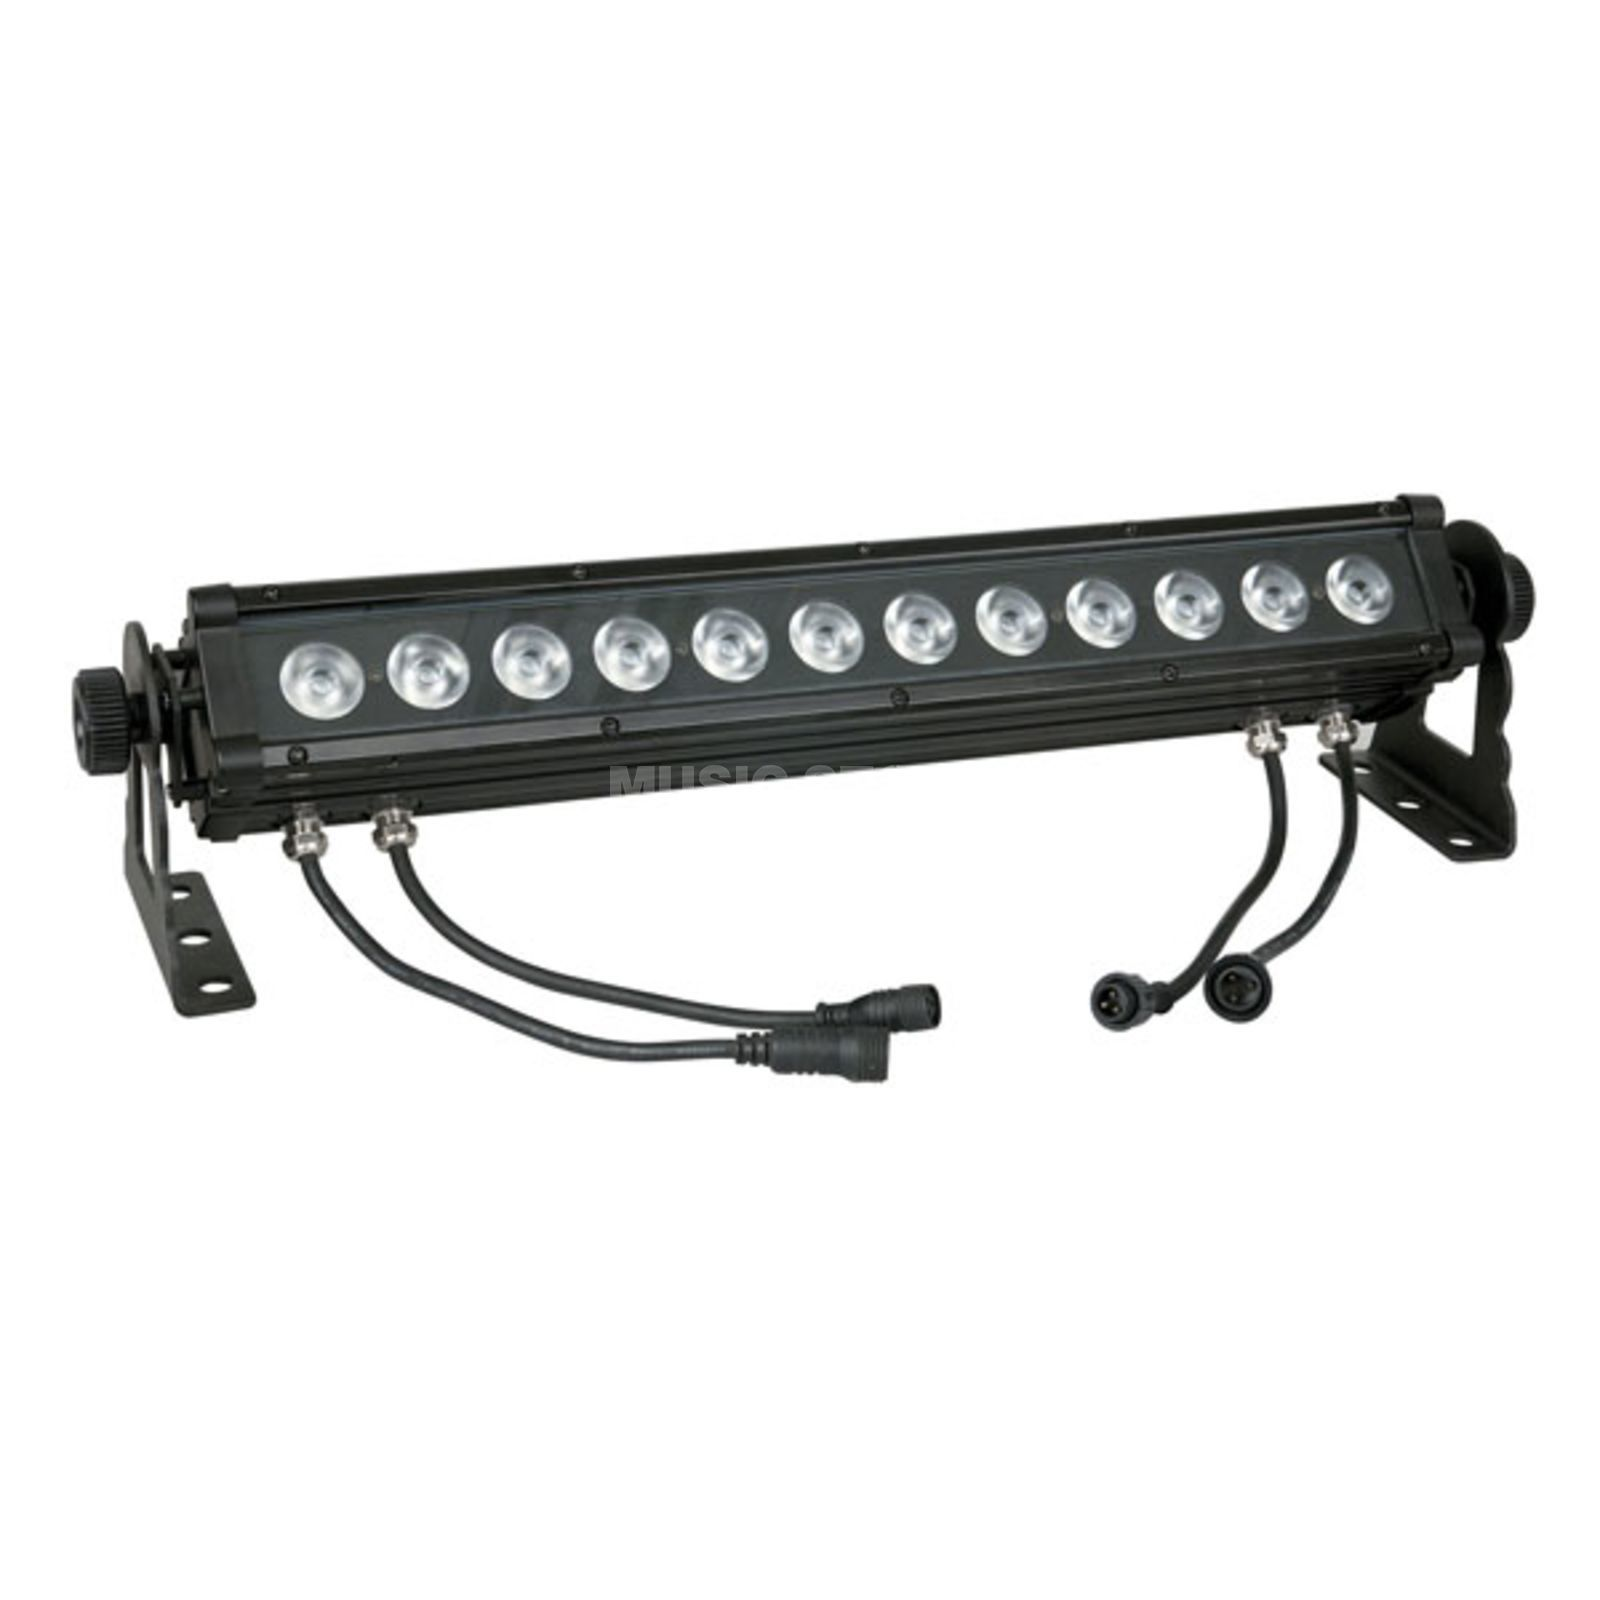 Showtec Cameleon Bar 12/3 IP-65, 12 x 3-in-1-RGB-LED Produktbild